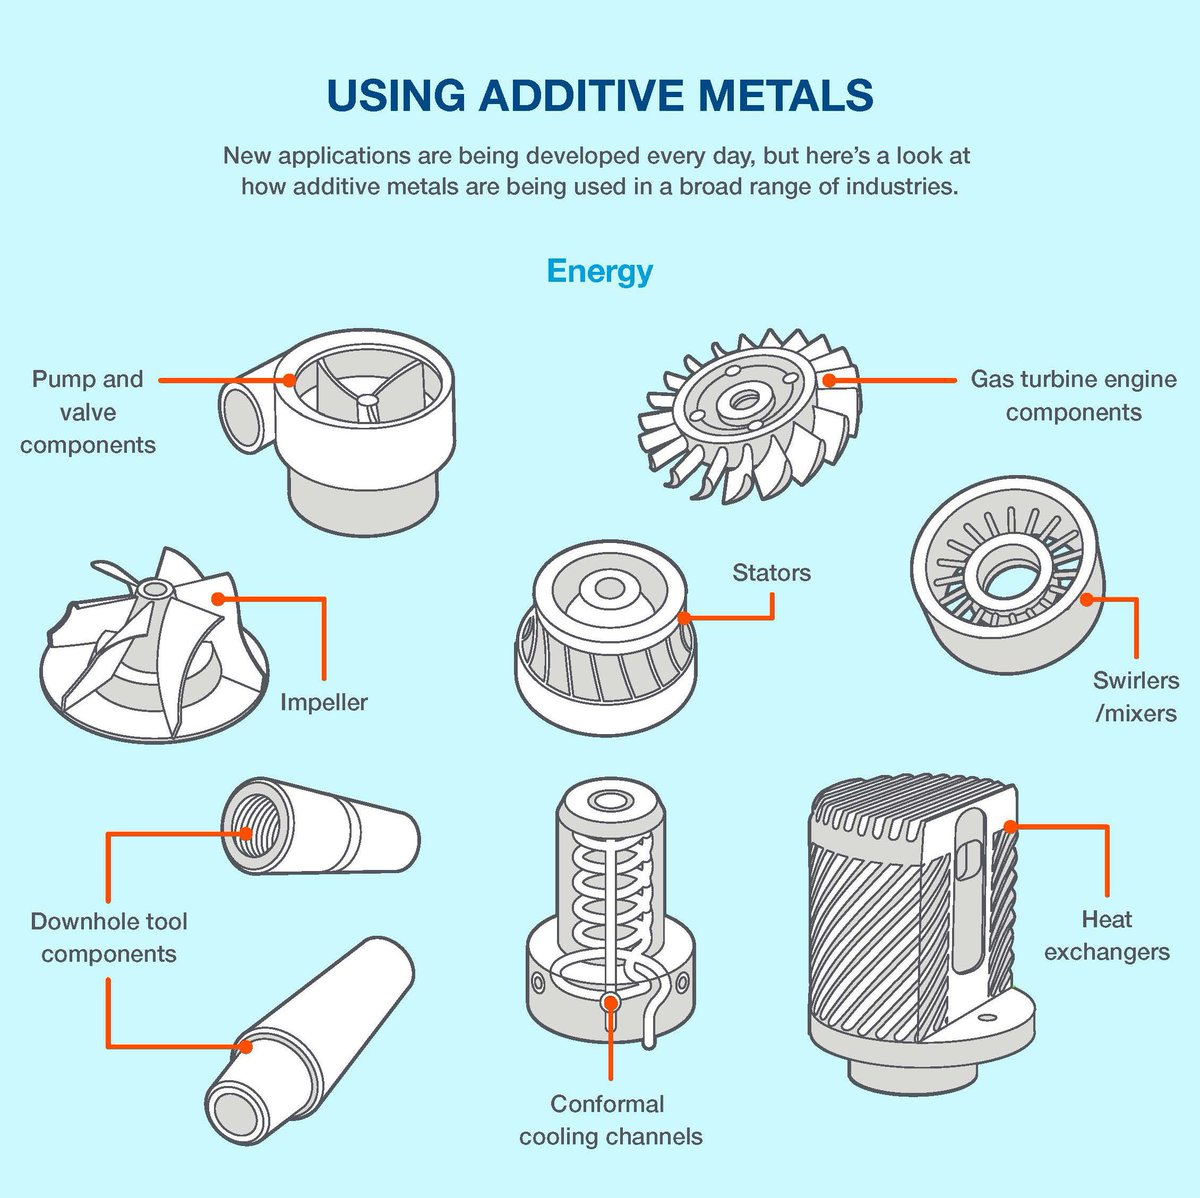 Stratasys Direct Mfg On Twitter Our 3dprinting Infographic Basic Engine Components Diagram Highlighting The Amazing Benefits Gained Applications Possible With Additive Metals